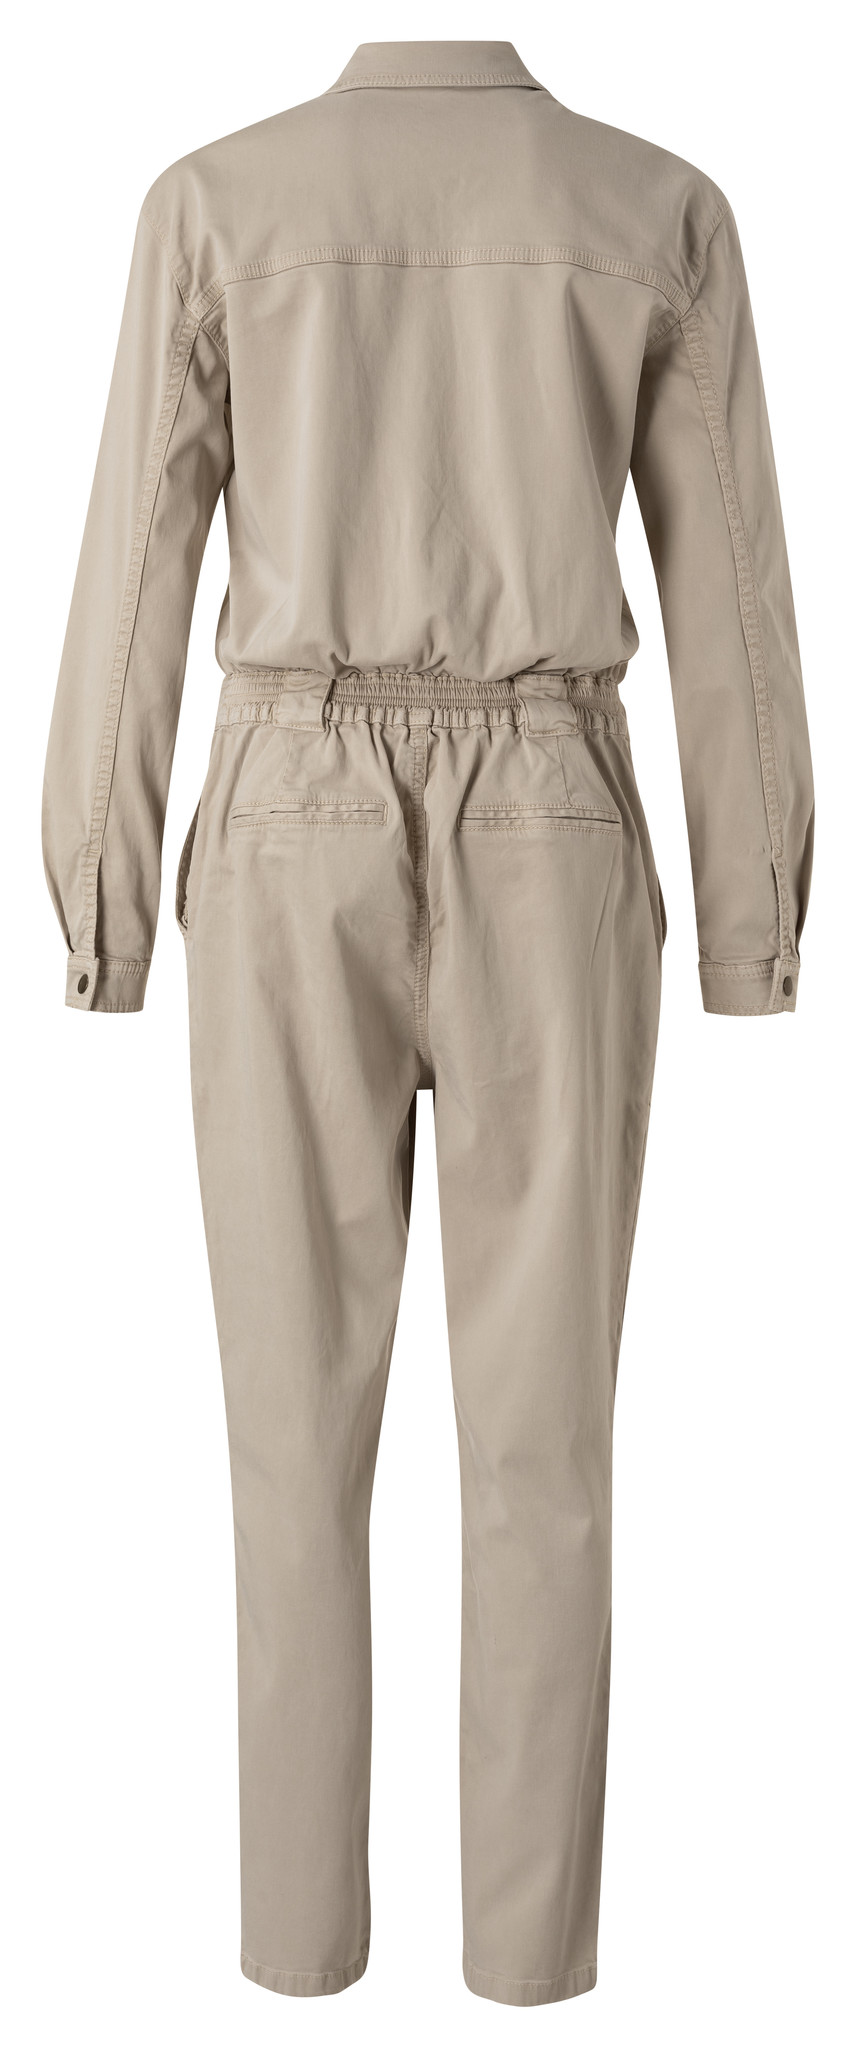 yaya Jumpsuit with worker 124128-113-2